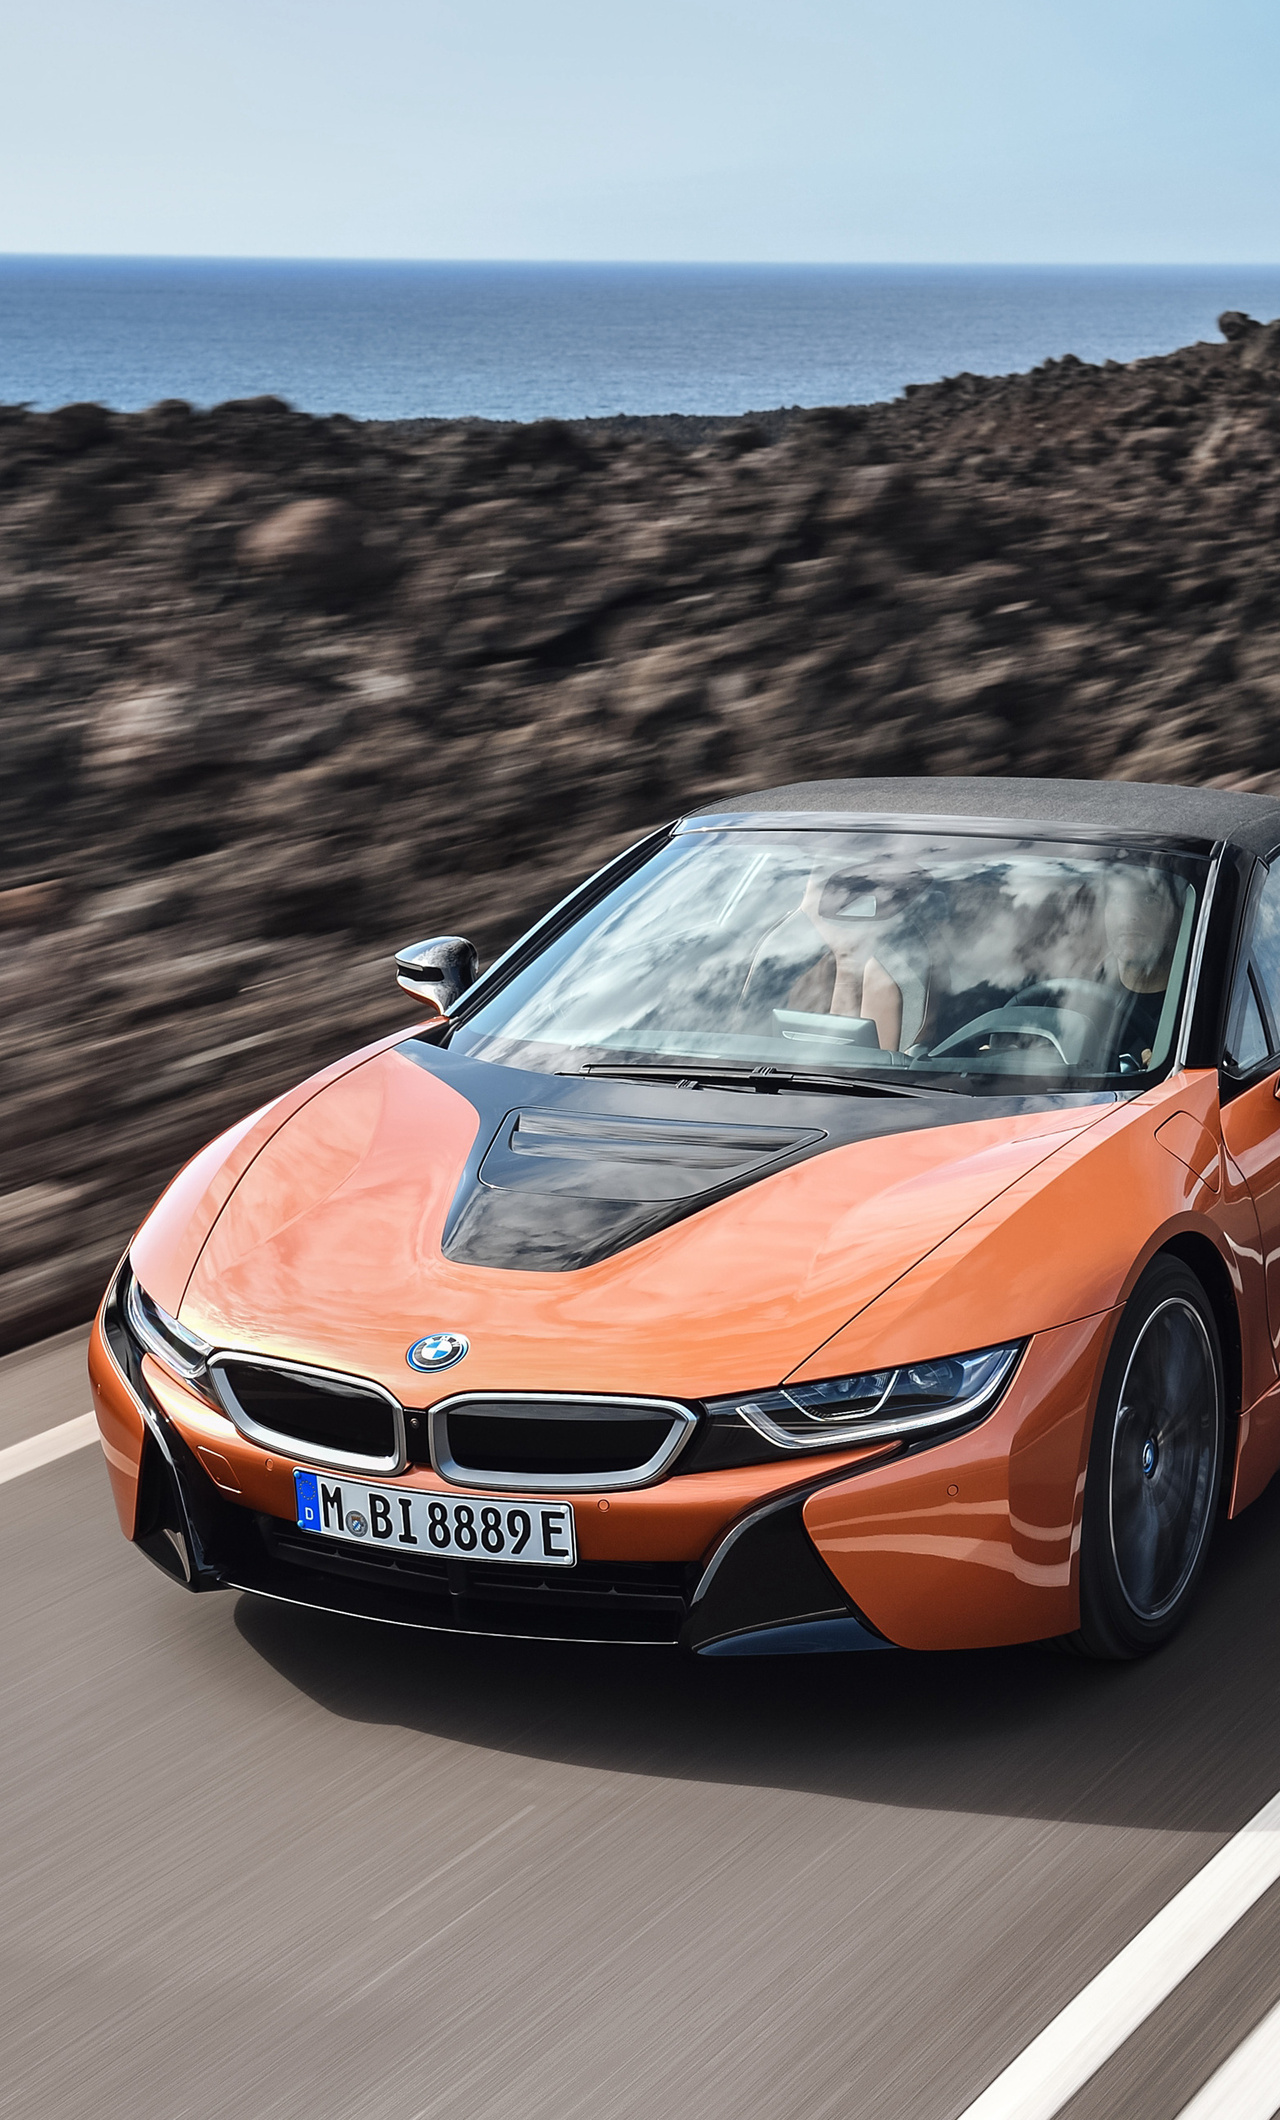 1280x2120 Bmw I8 Roadster Iphone 6 Hd 4k Wallpapers Images